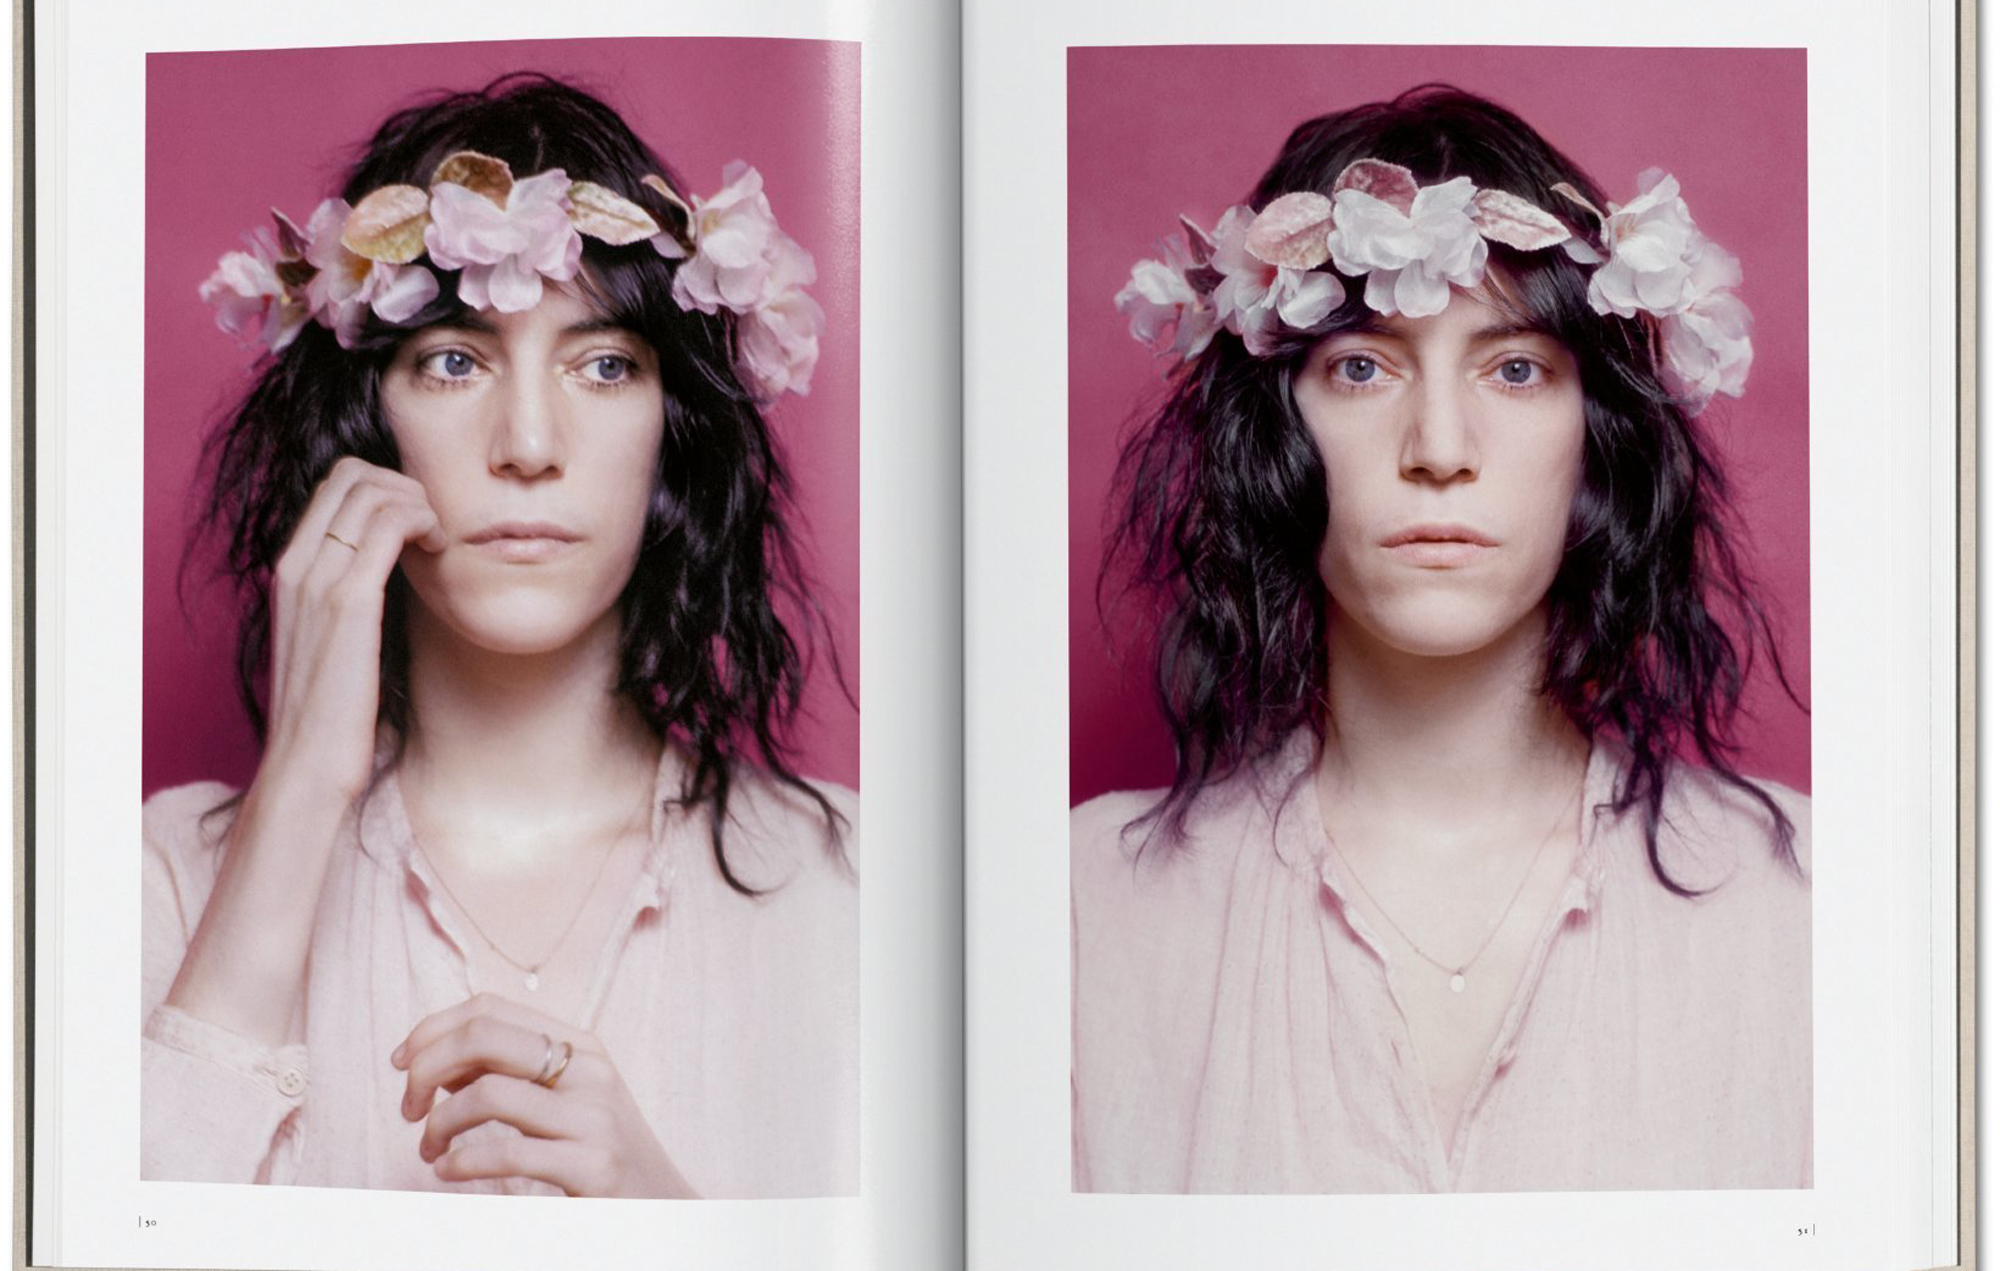 Patti Smith reveals stunning new photobook – and stands up for youth on-the-march – at Chicago event